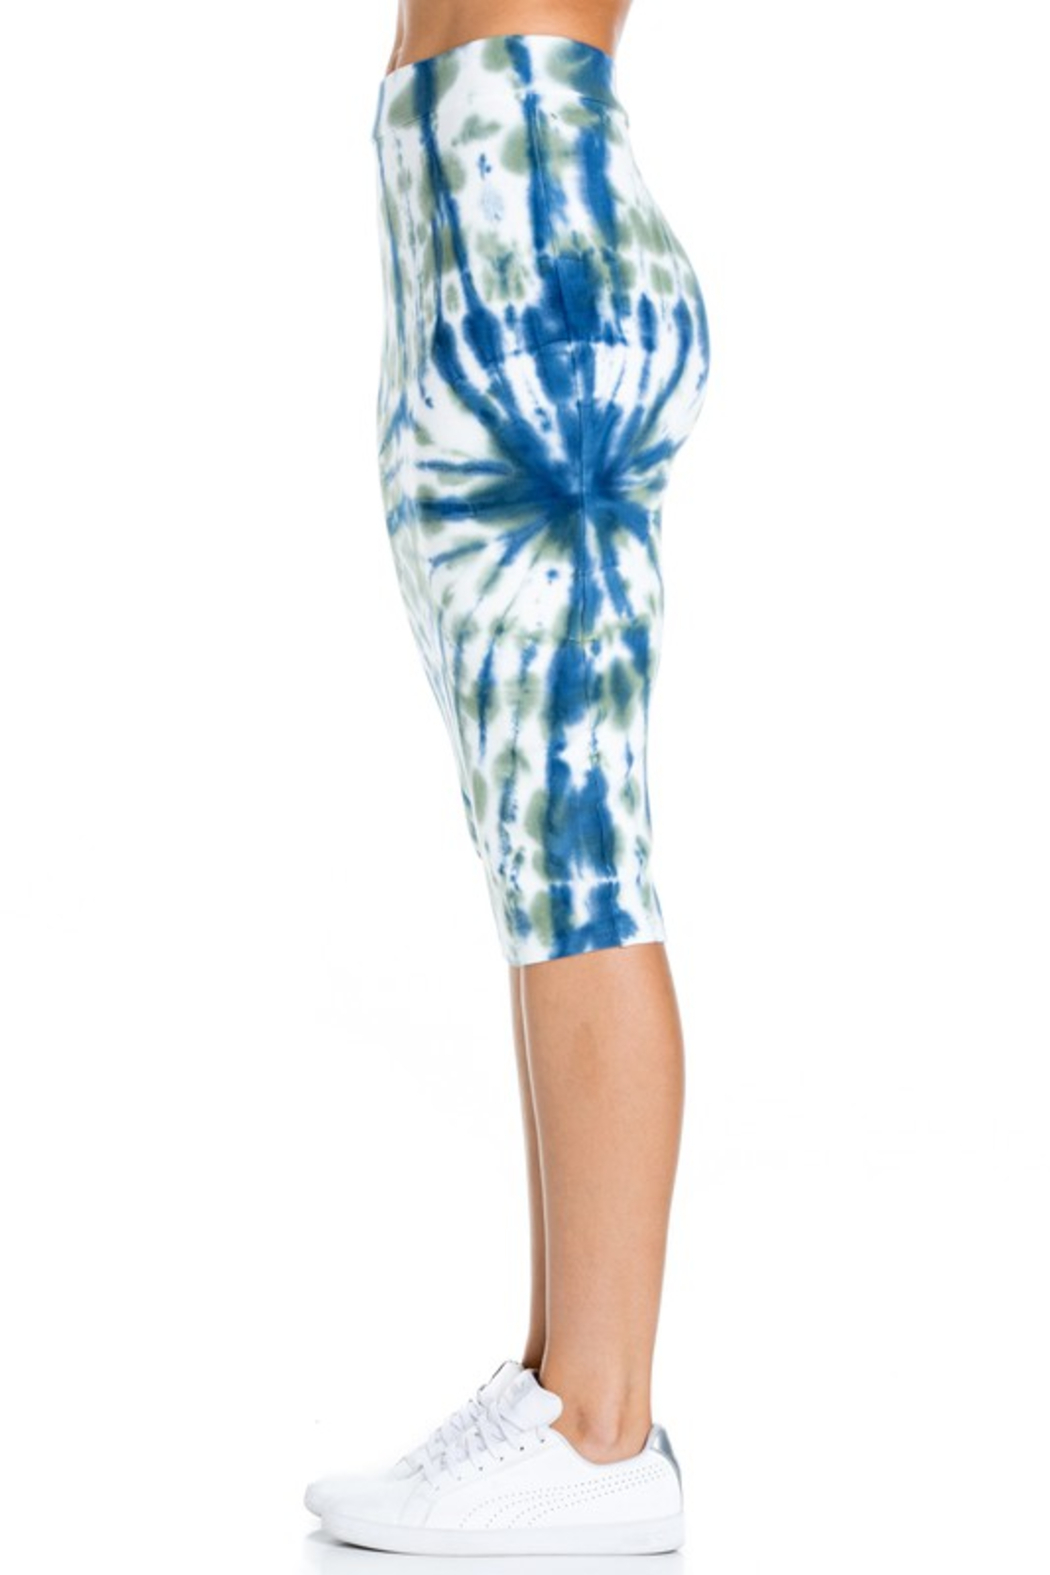 R+D  Tie dye pencil skirt - Side Cropped Image